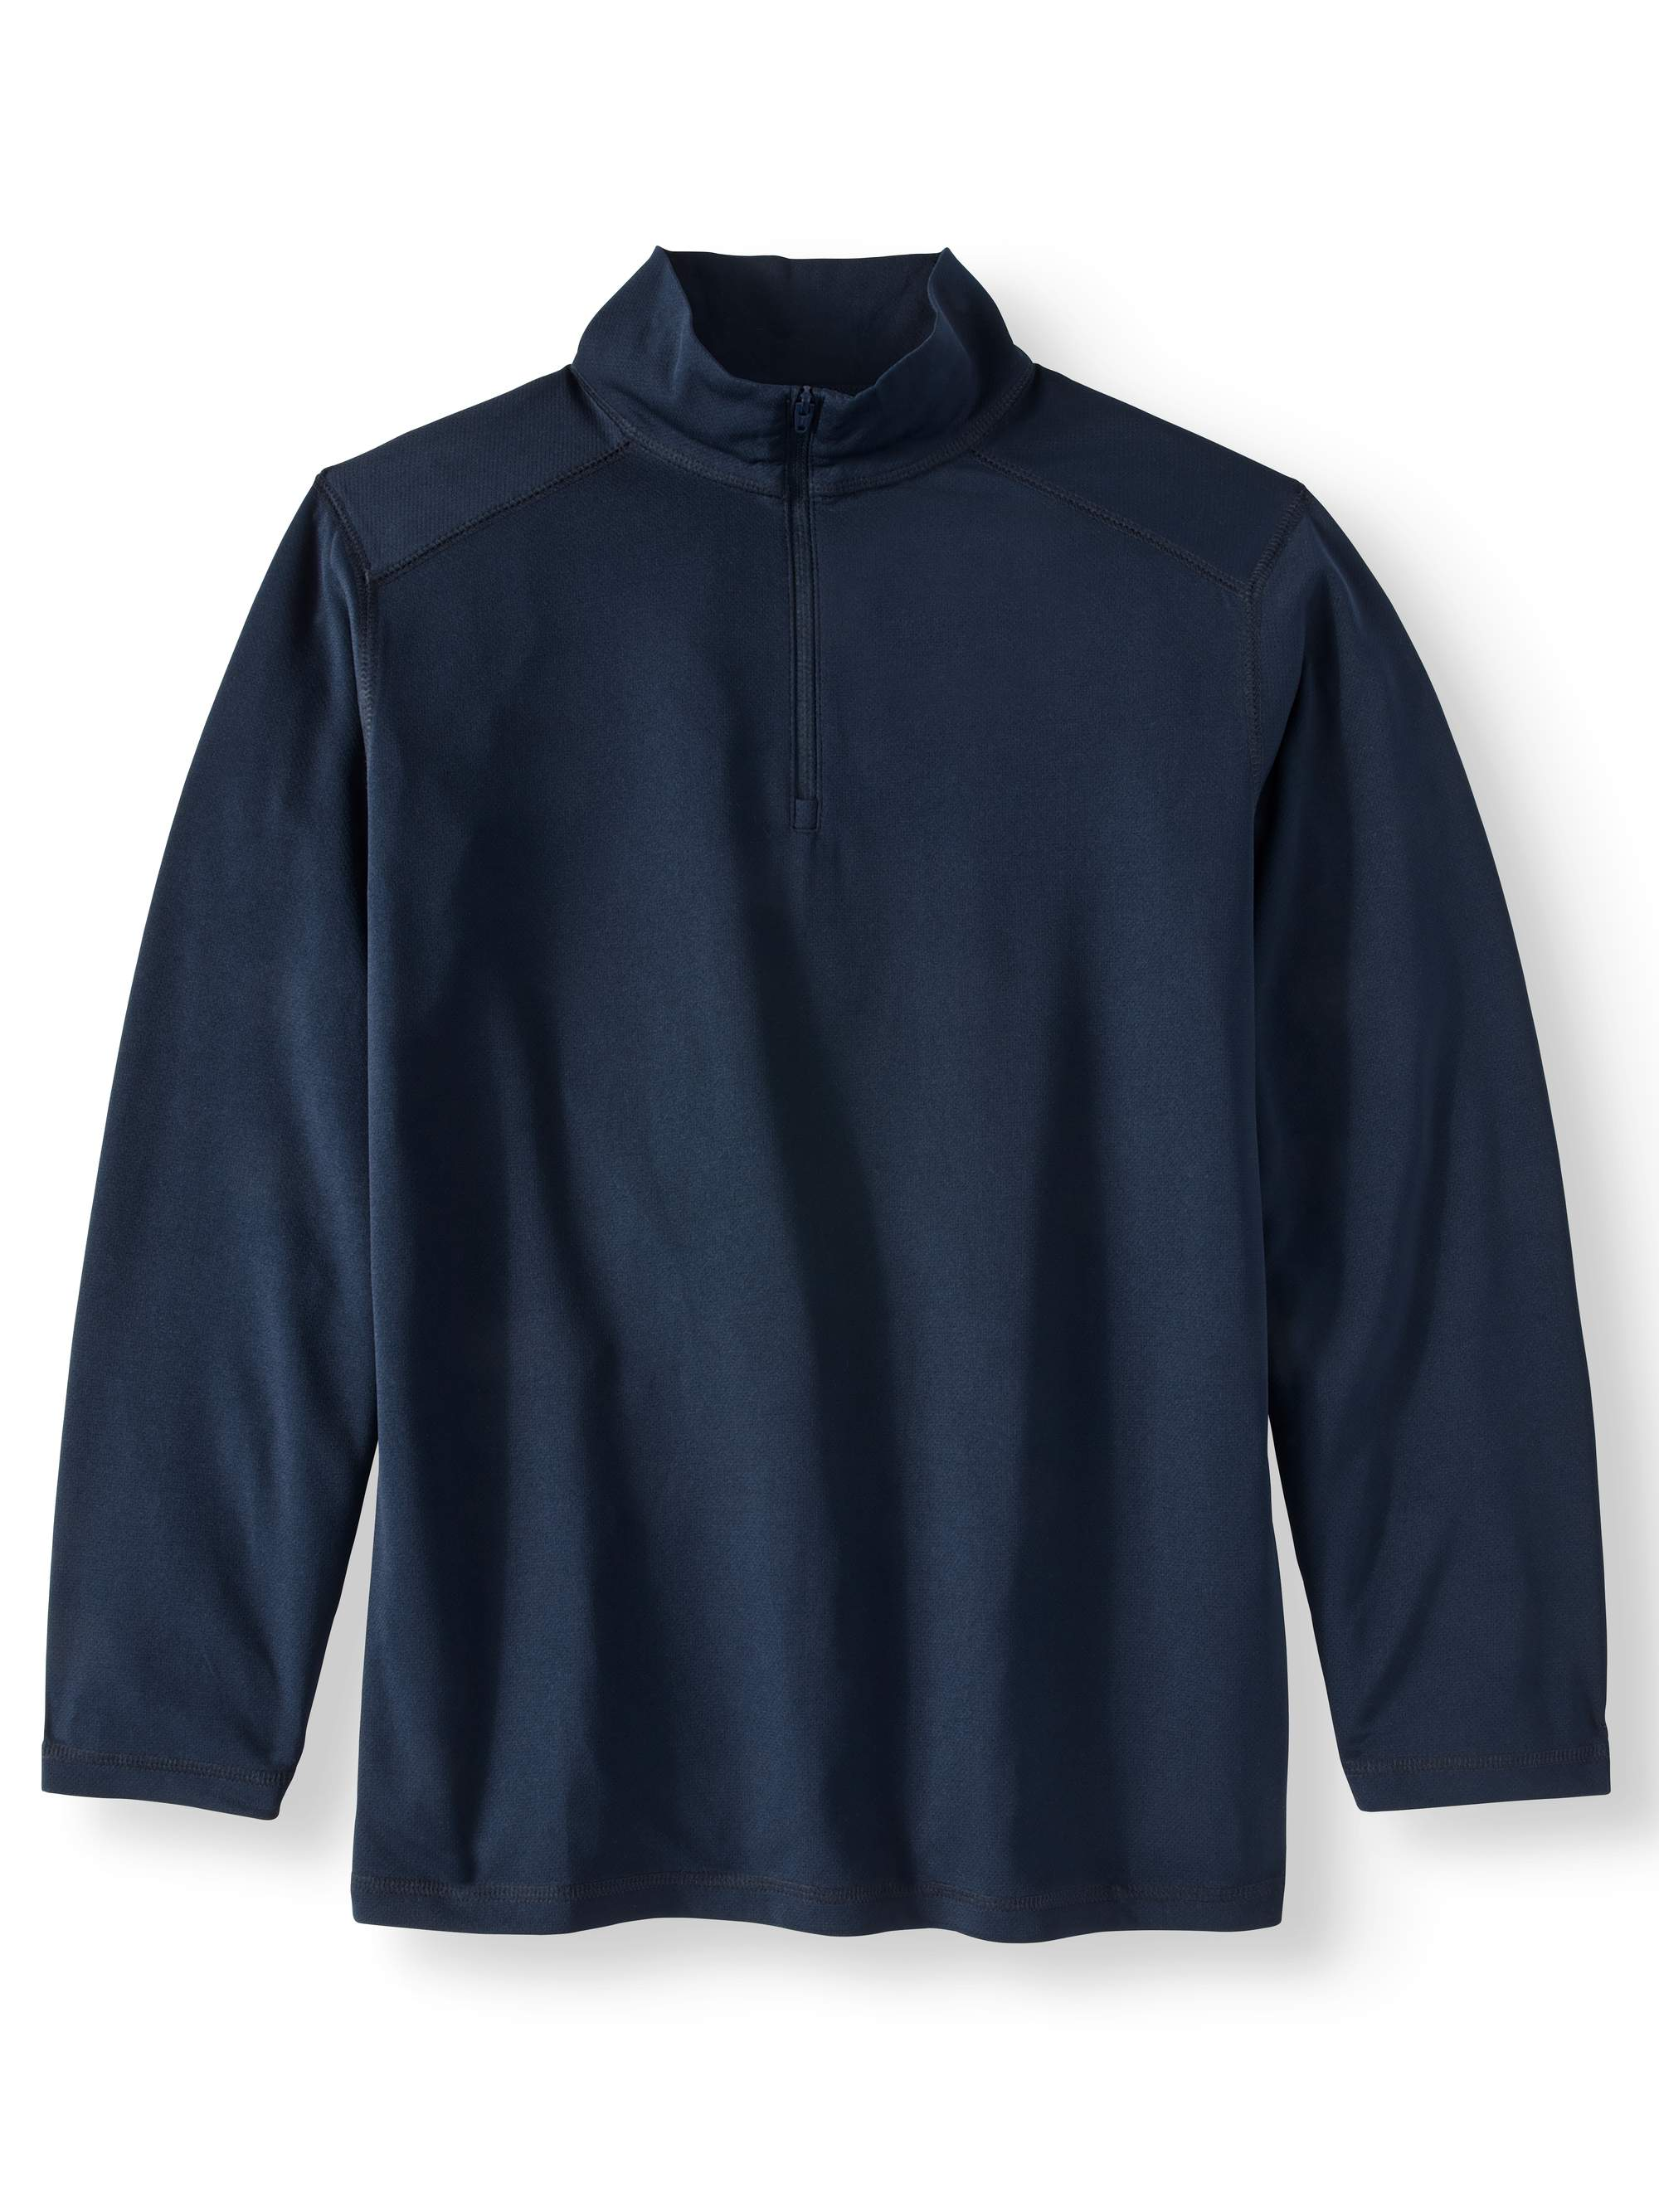 Boys School Uniform Quarter Zip Performance Pullover